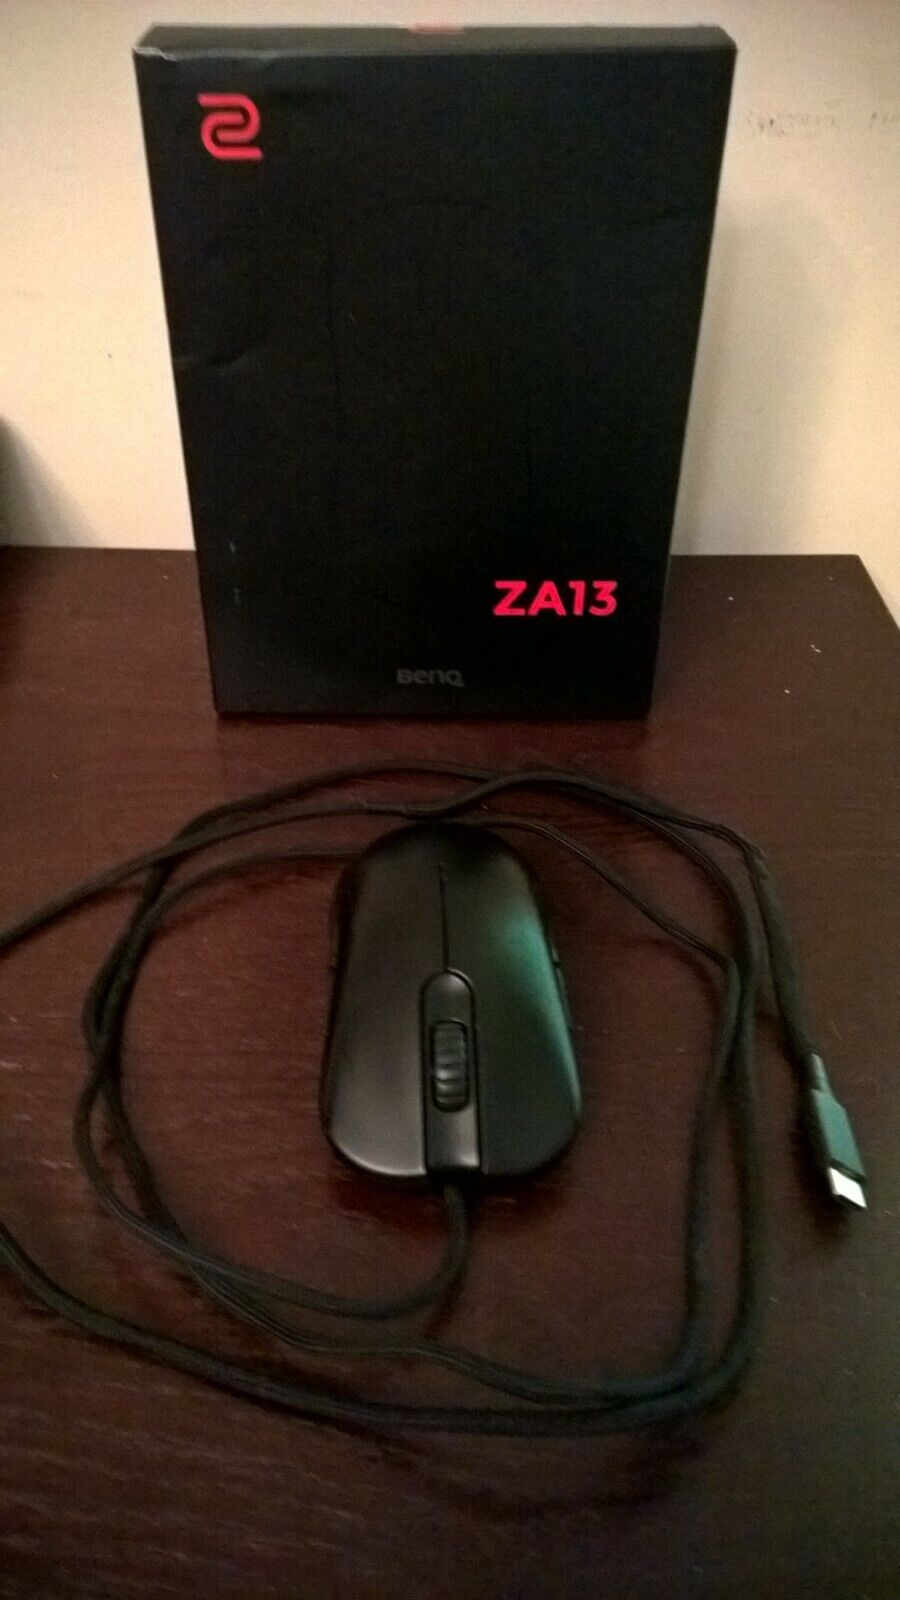 Zowie ZA13 Gaming Mouse - $20.00